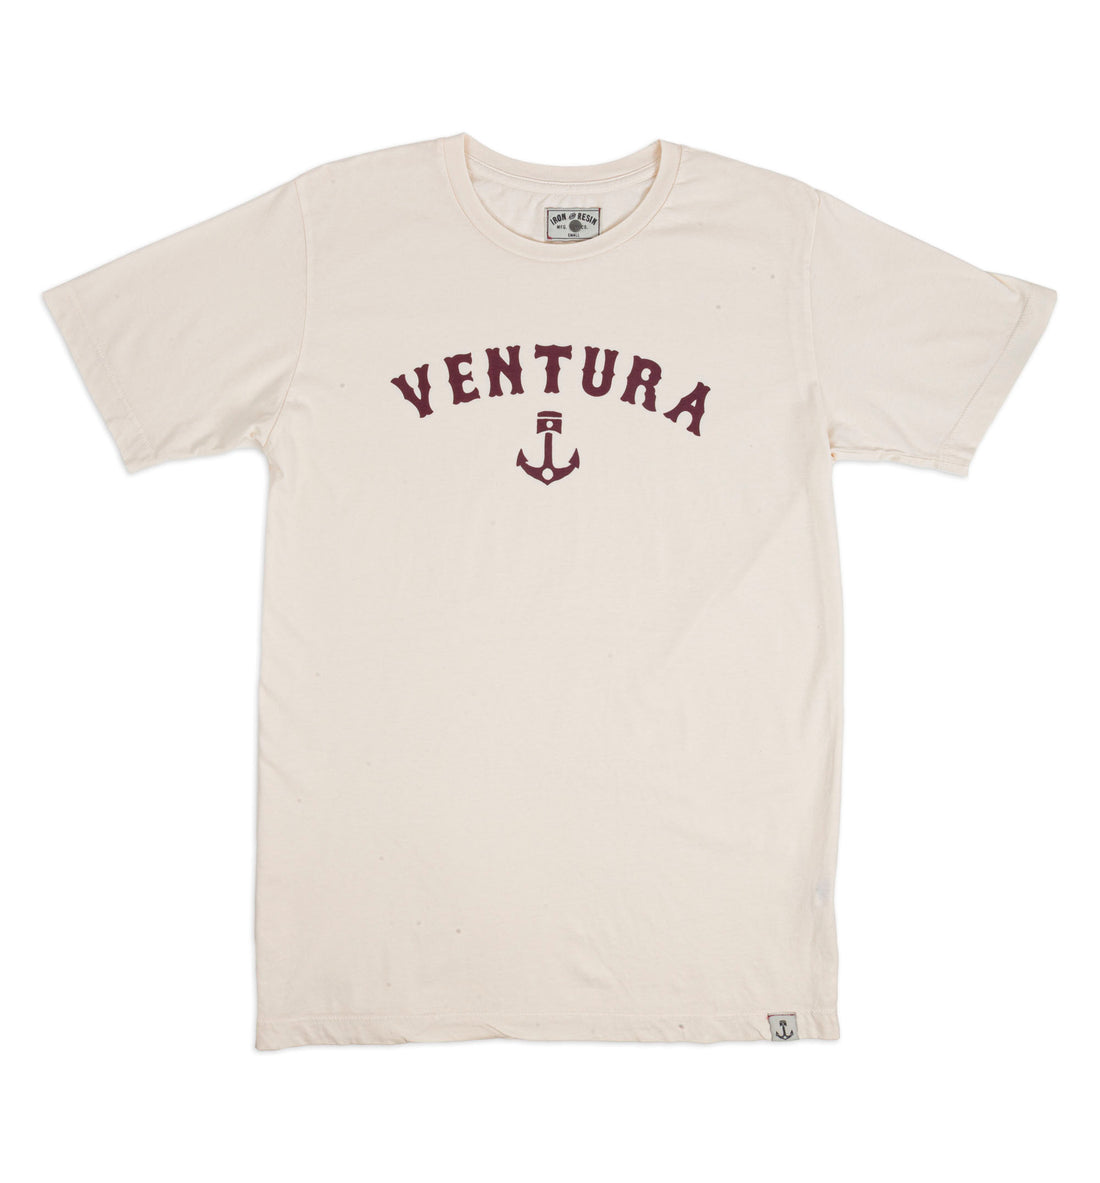 Ventura Anchor Piston Tee - Tops - Iron and Resin